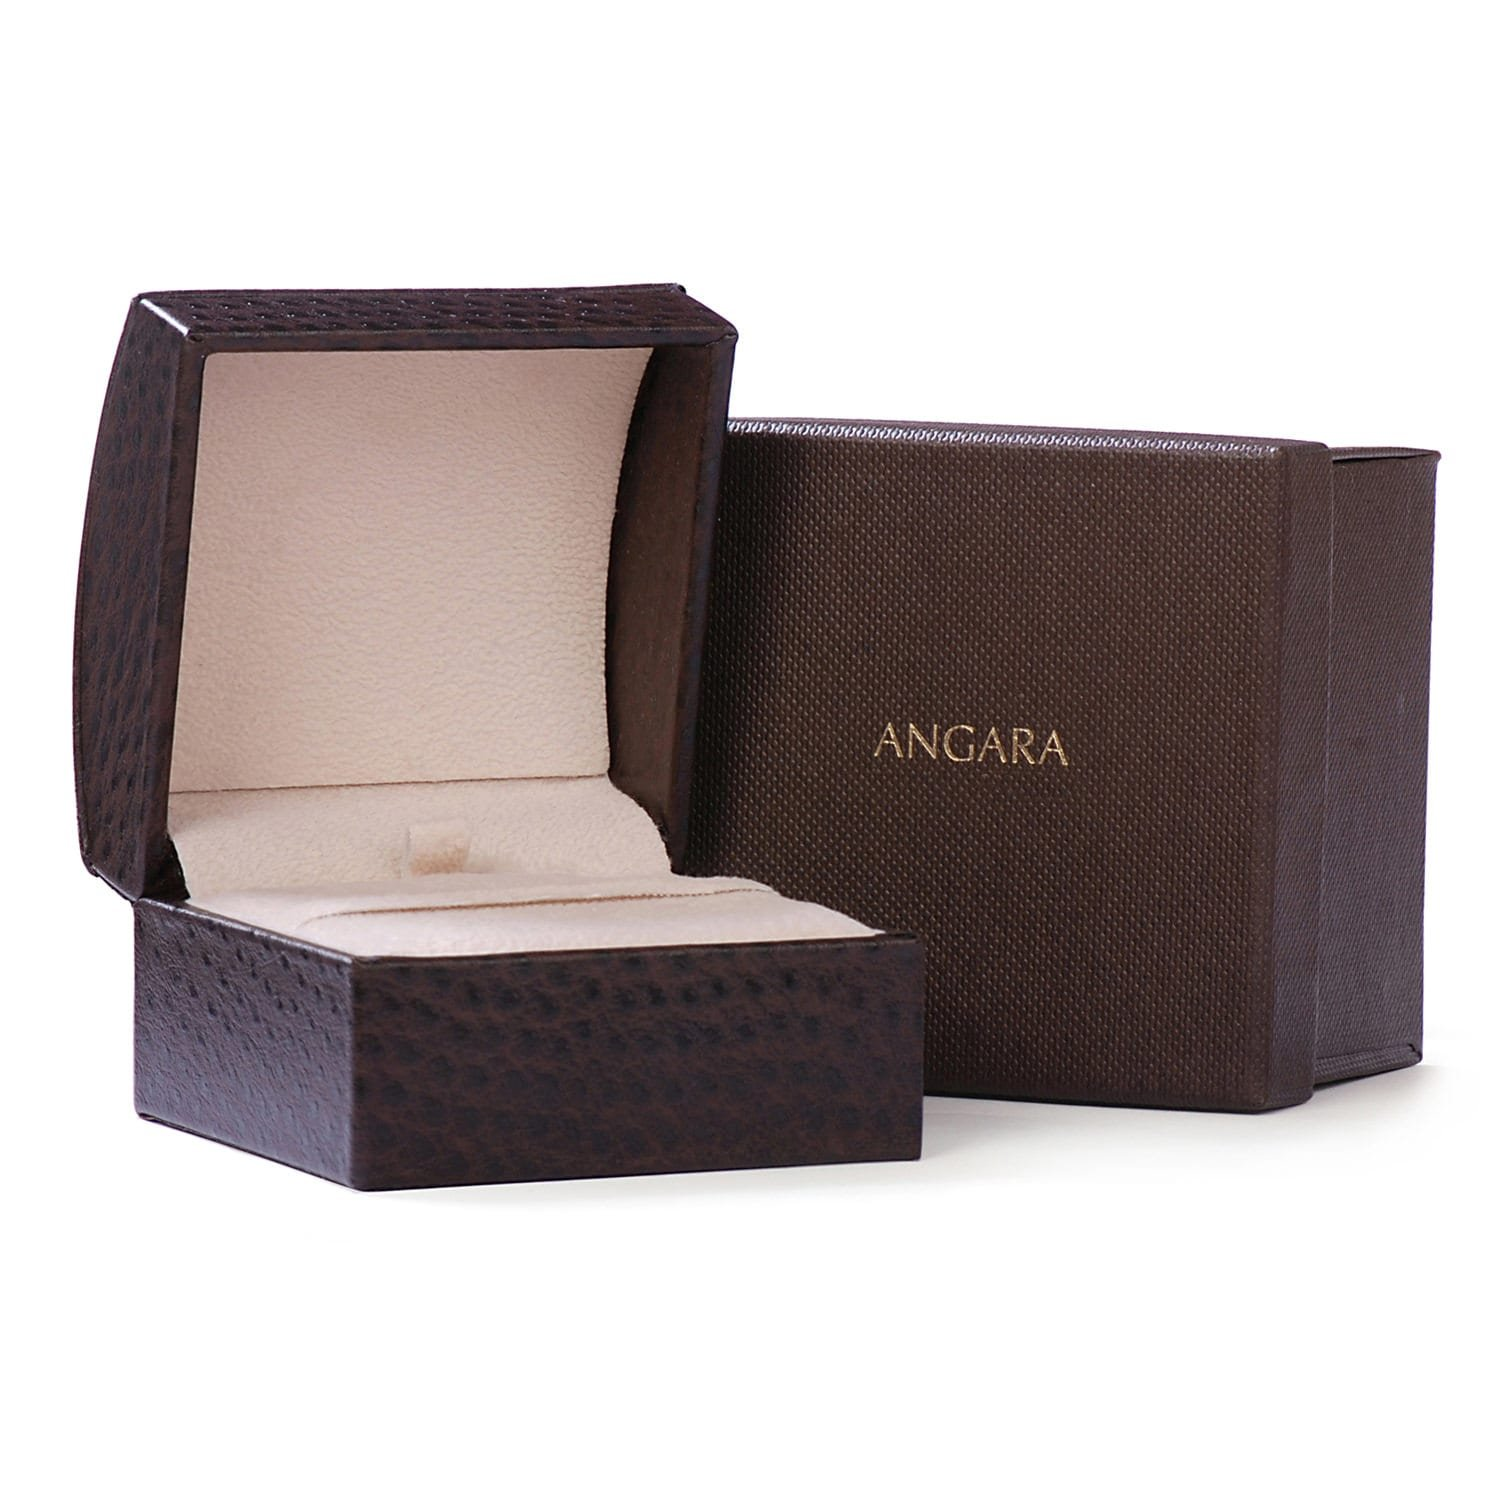 Princess Diana Inspired Ruby Ring with Diamond Halo in 14K Yellow Gold (6x4mm Ruby) by ANGARA